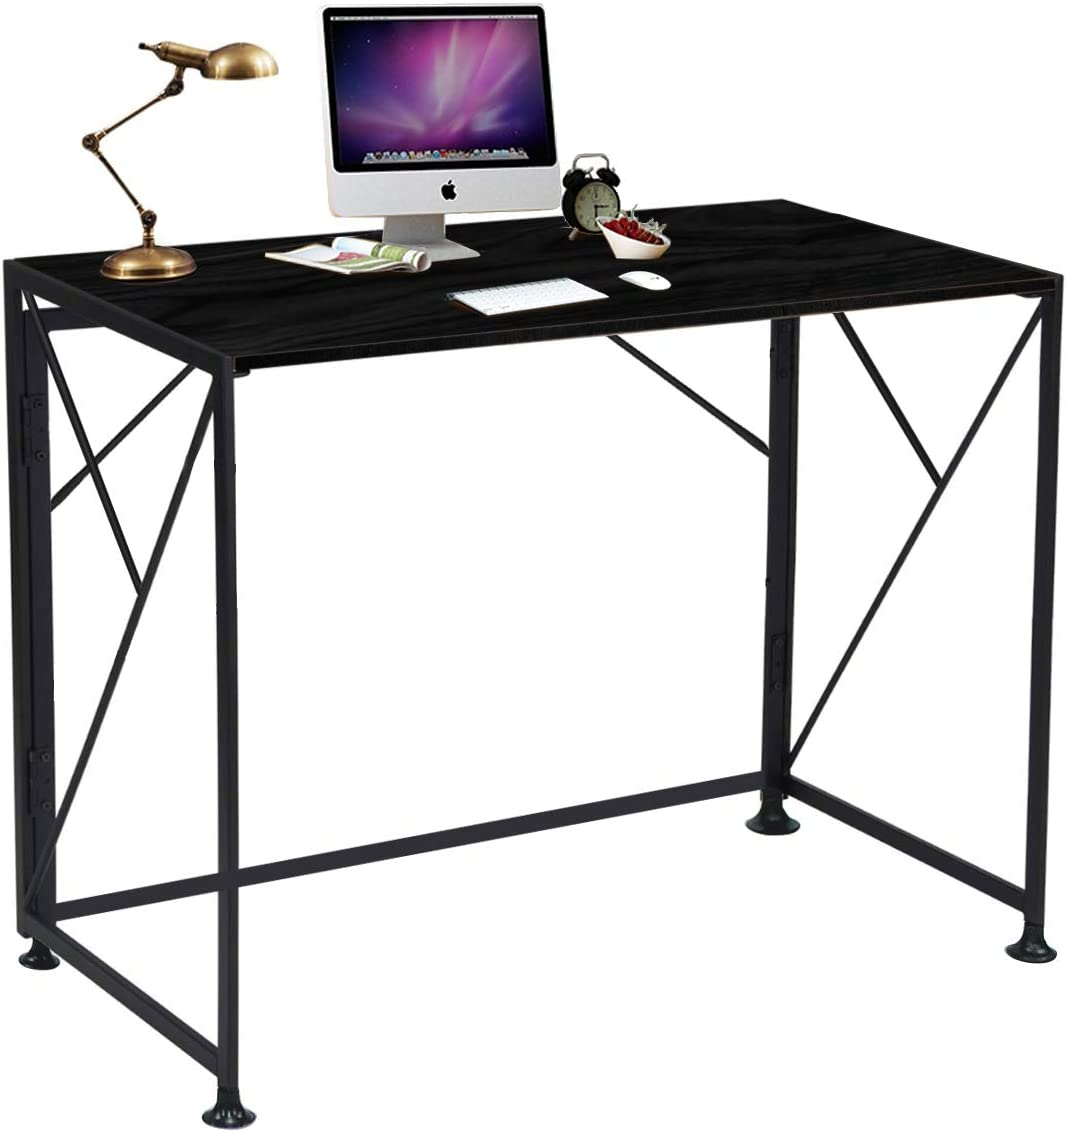 ComHoma Writing Computer Desk Office Folding Table Modern Simple Work Study Desk Industrial Style PC Laptop Table for Home Office, No Assembly Required, Black